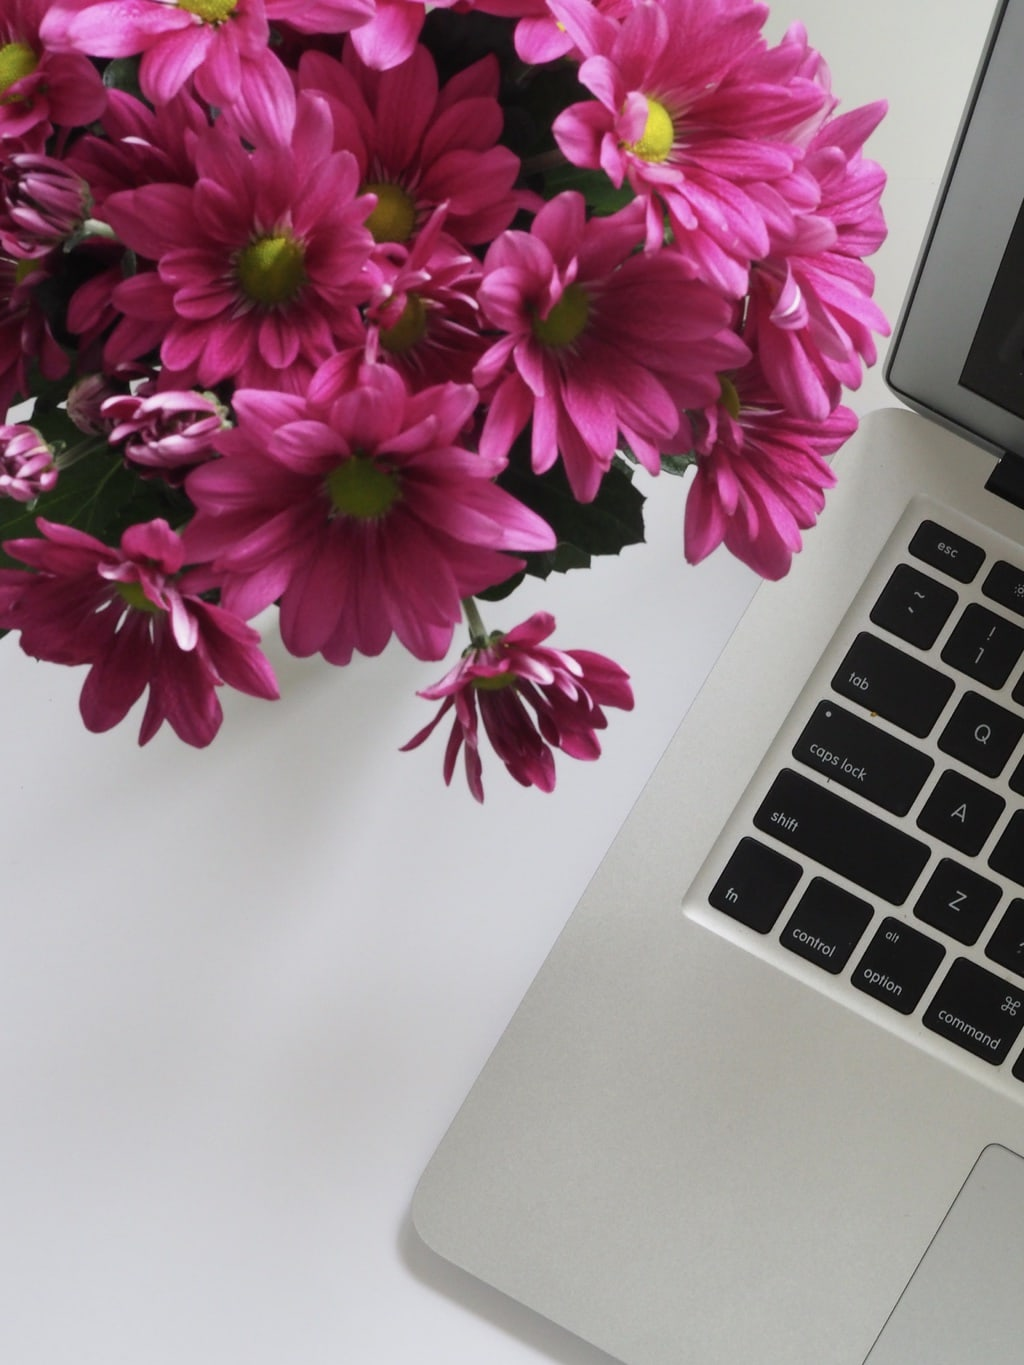 Flowers next to a laptop computer